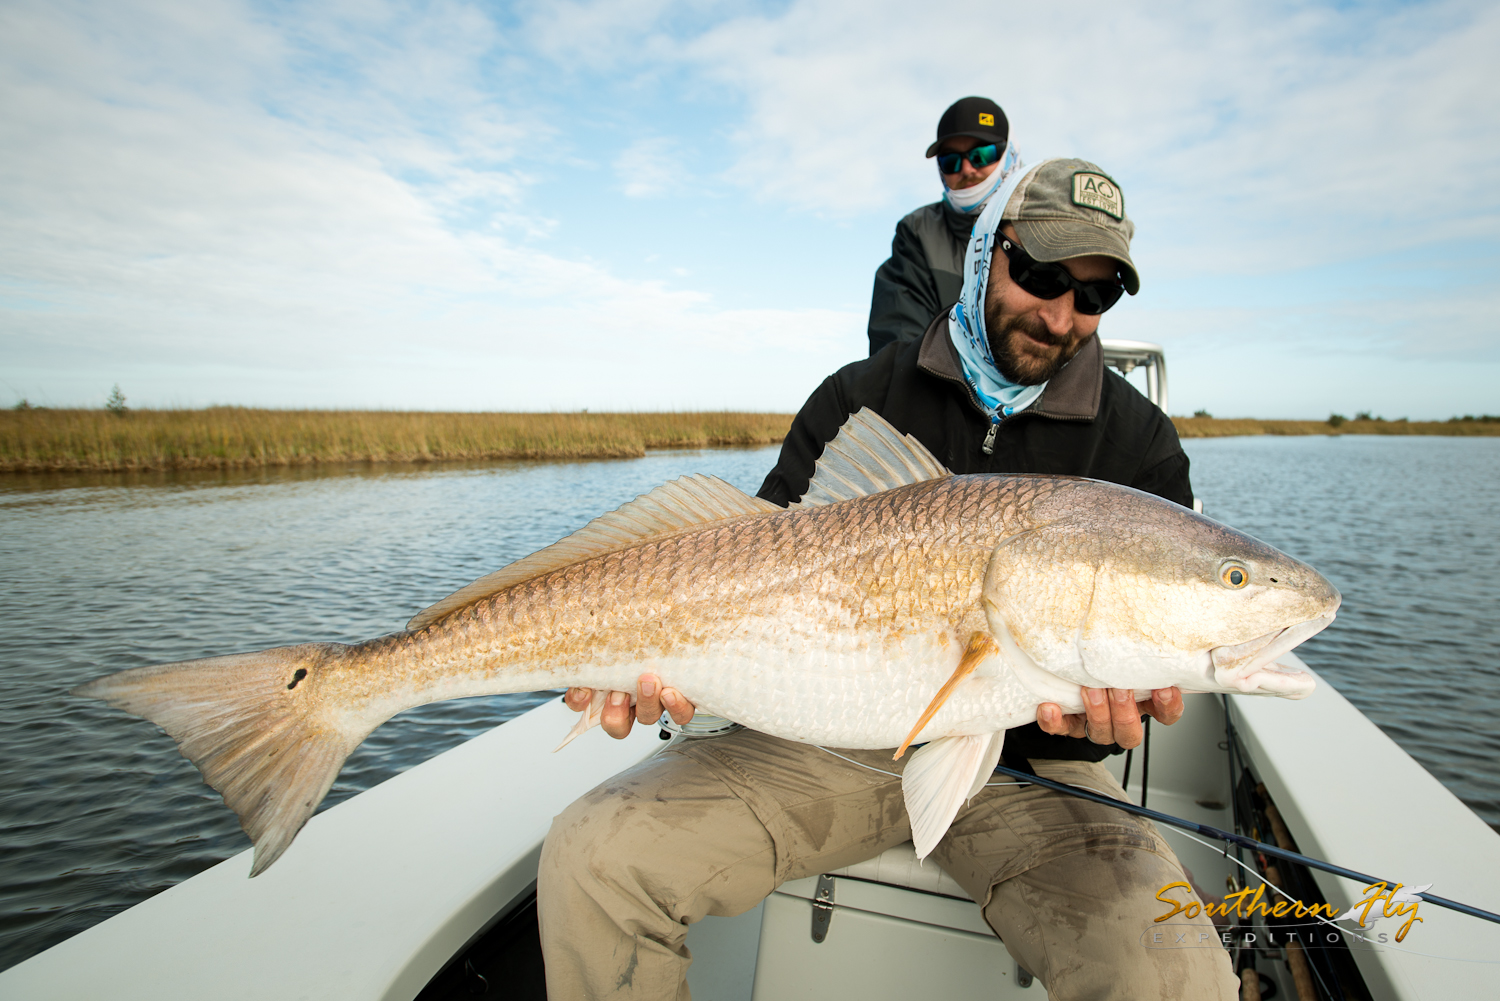 Fly fishing outside of new orleans louisiana with southern fly expeditions and captain brandon keck